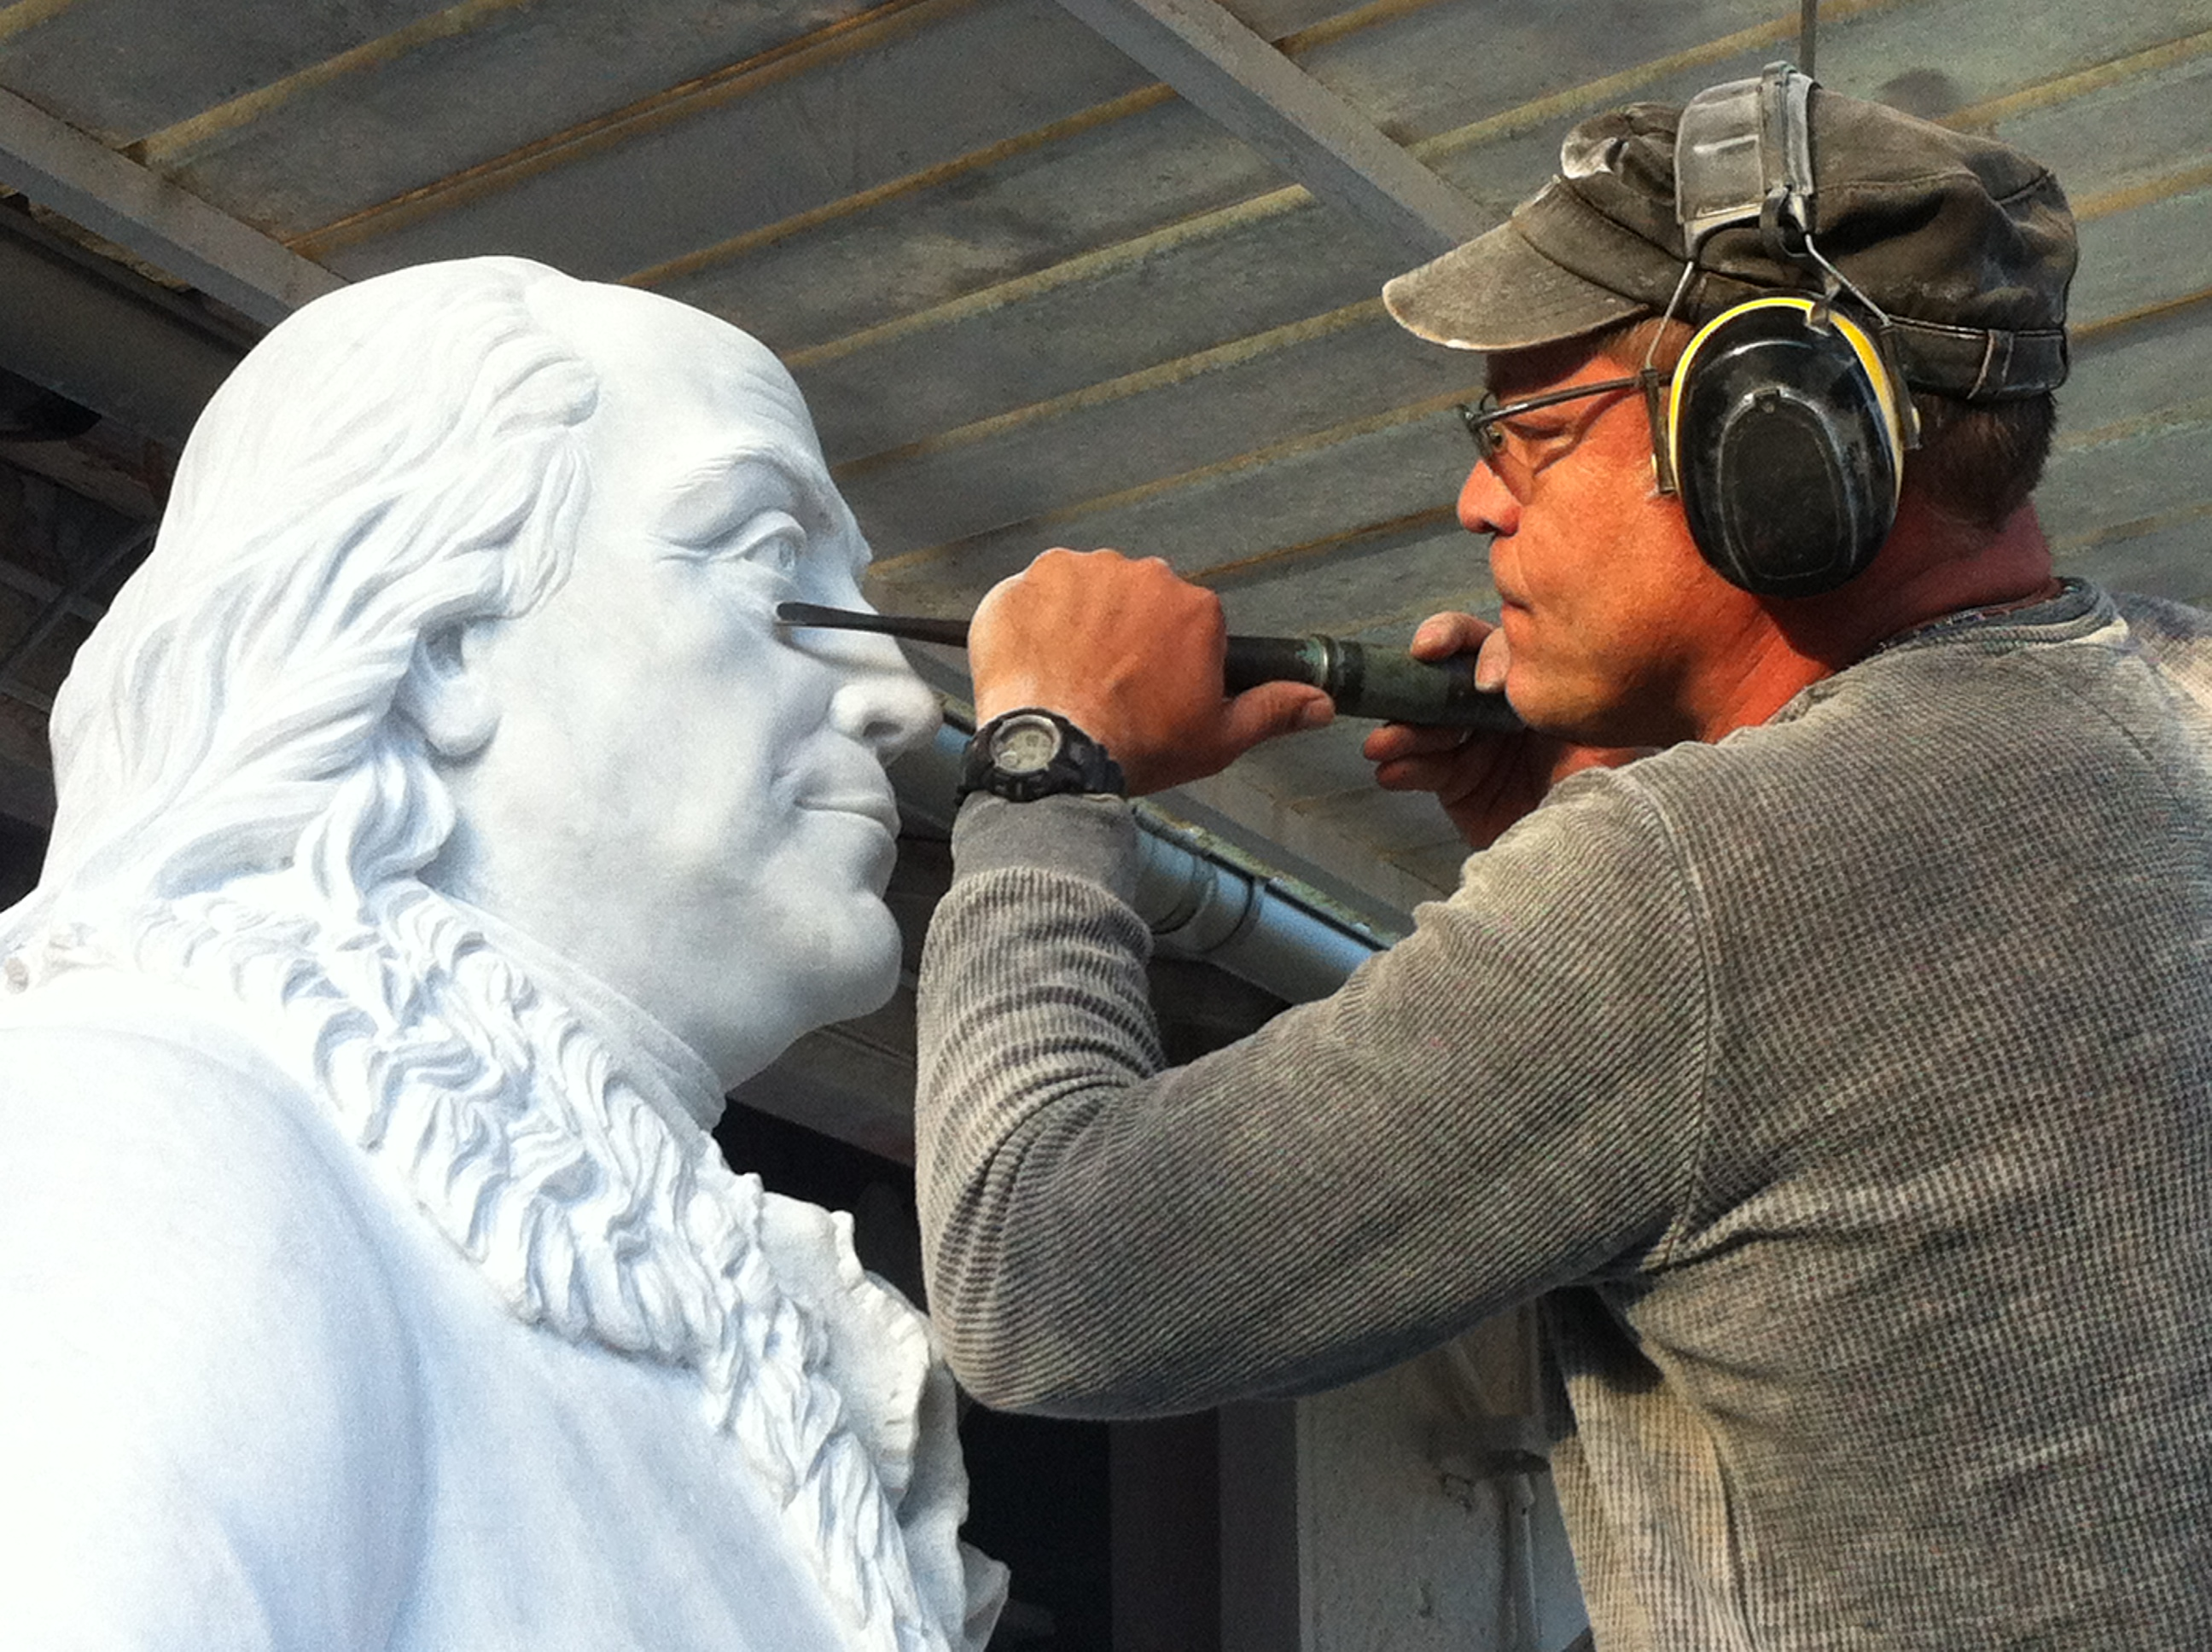 Sculptor Oleg Lobykin works on the marble statue of Benjamin Franklin. (Photo courtesy Oleg Lobykin)